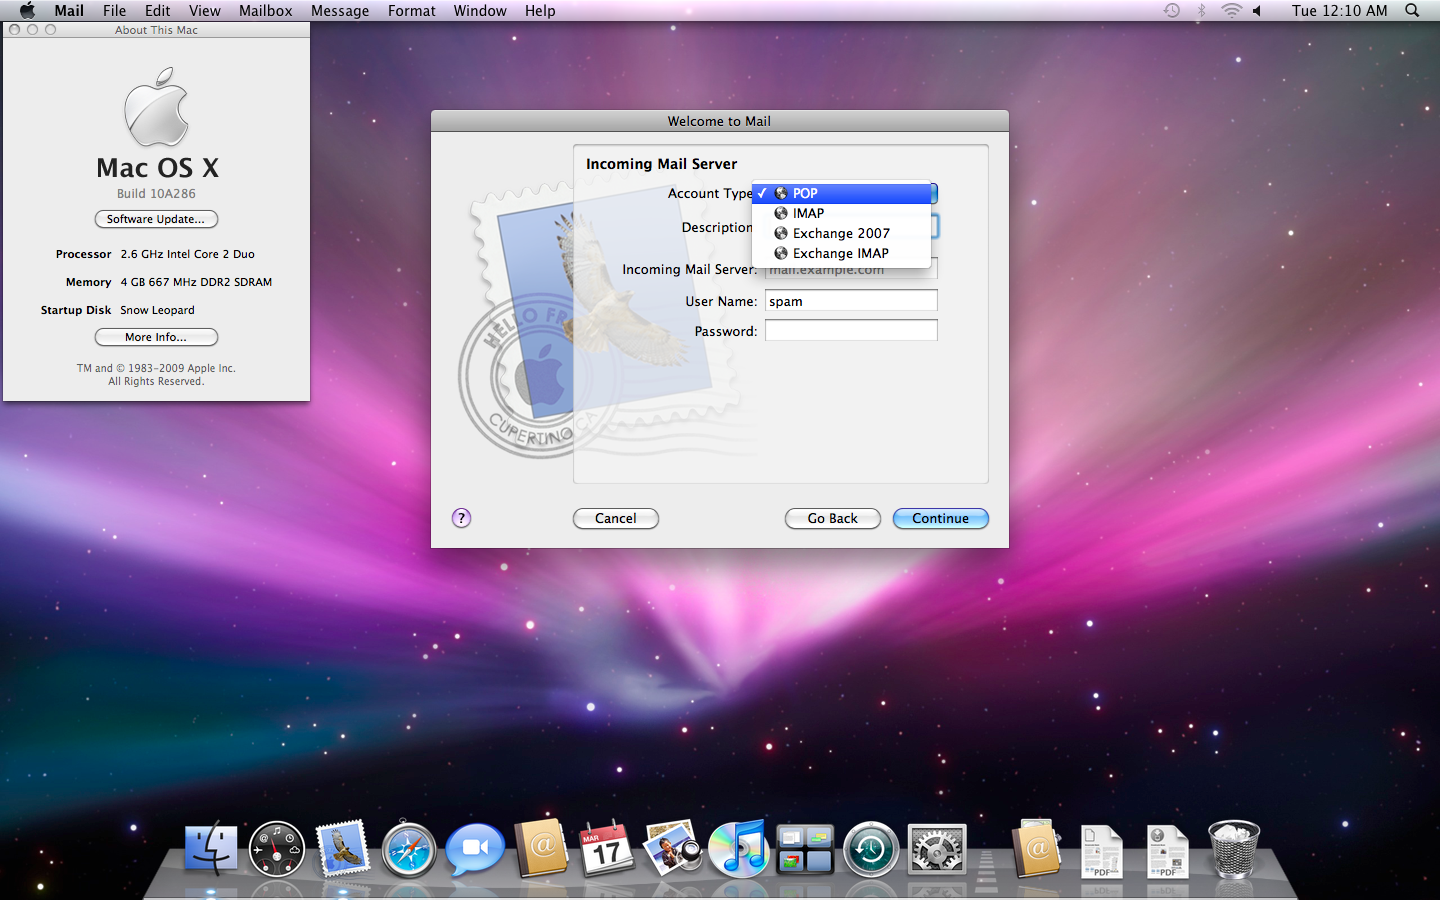 Download mac os x 10. 6 snow leopard + iboot + multibeast snow.